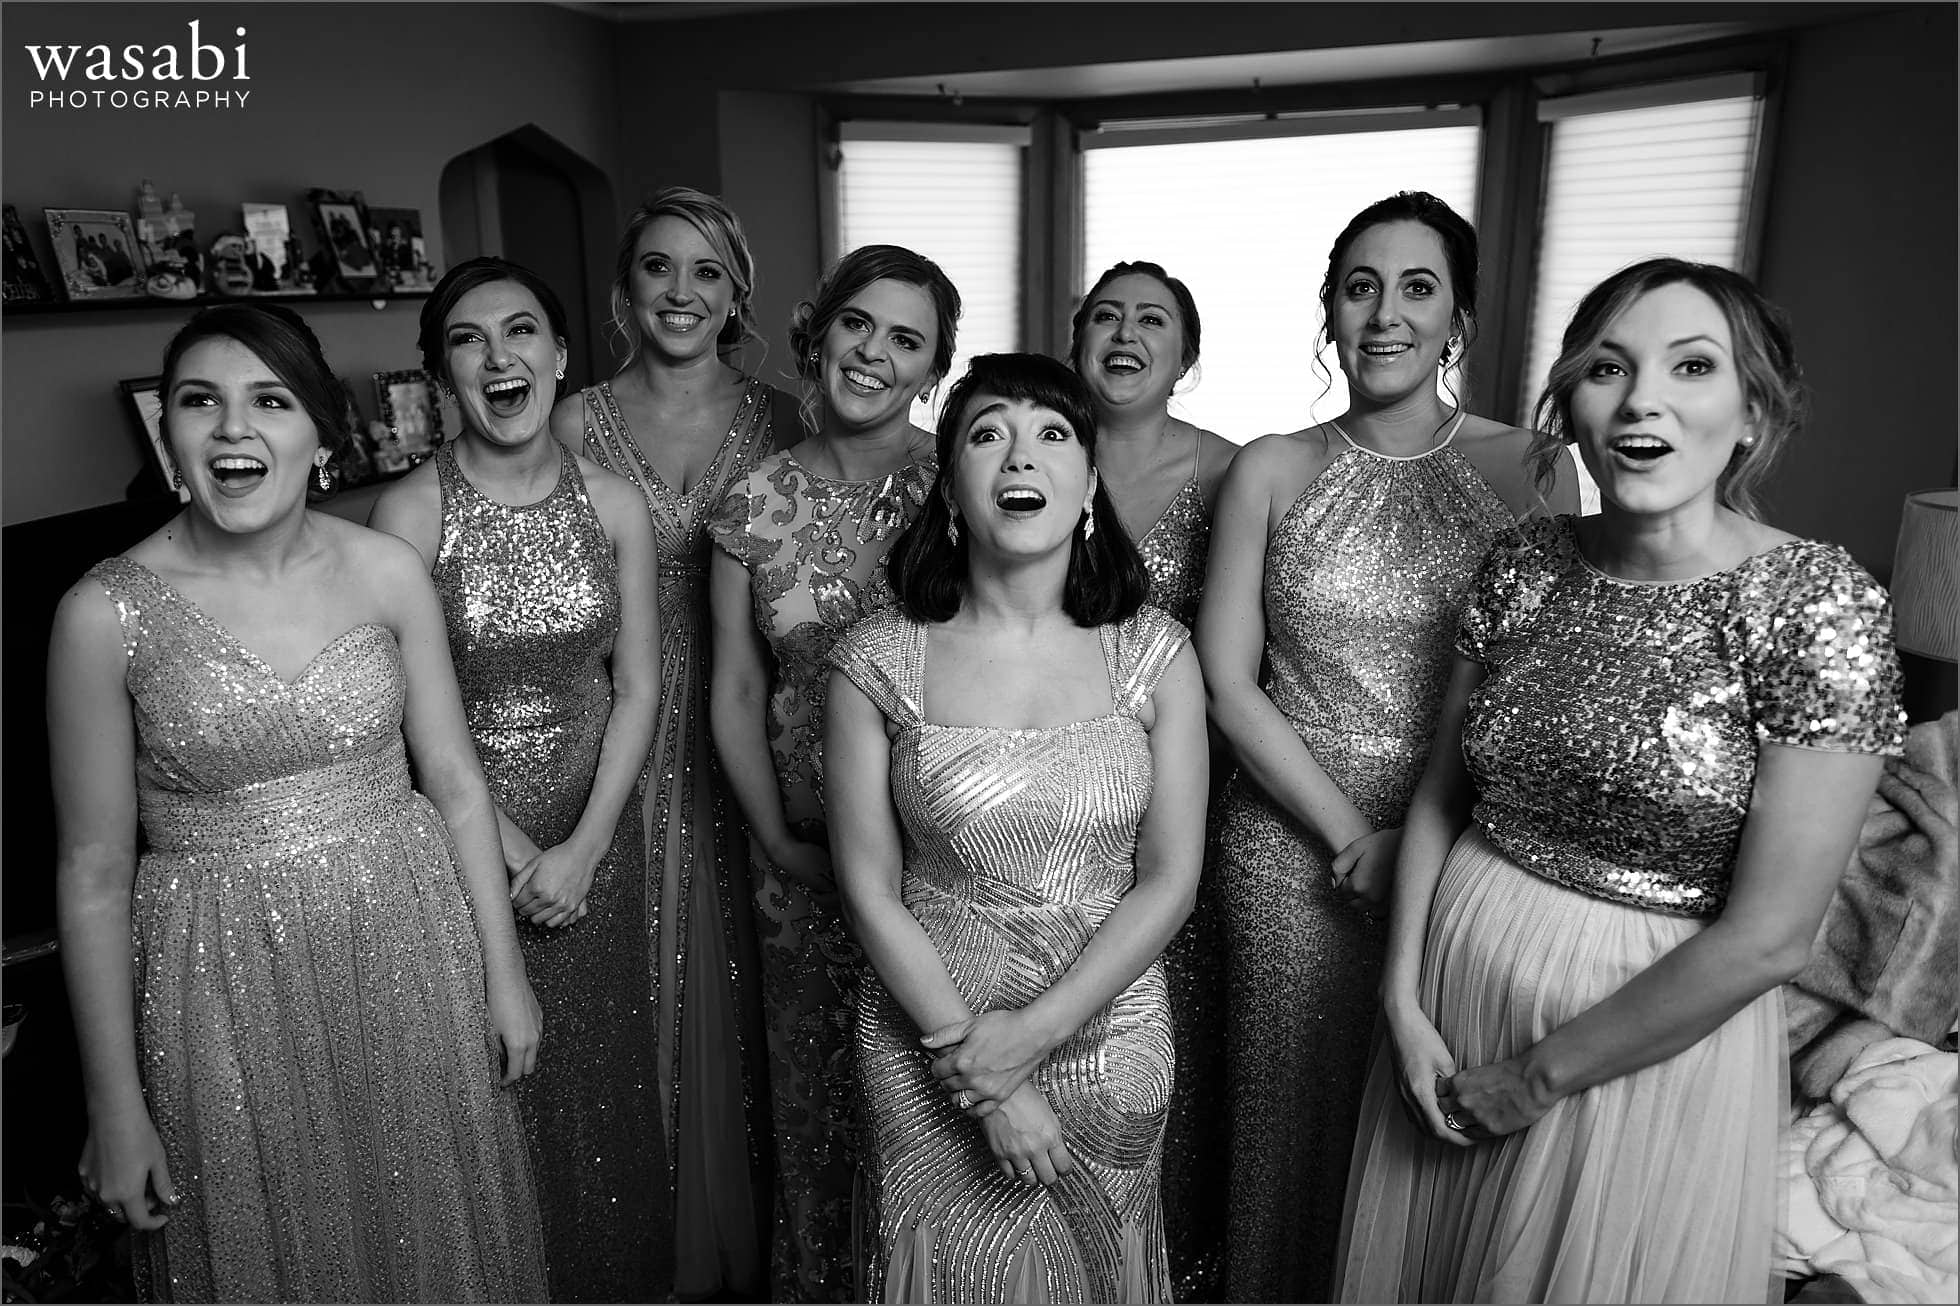 bridesmaids react to seeing bride in wedding dress for the first time as she comes down the stairs